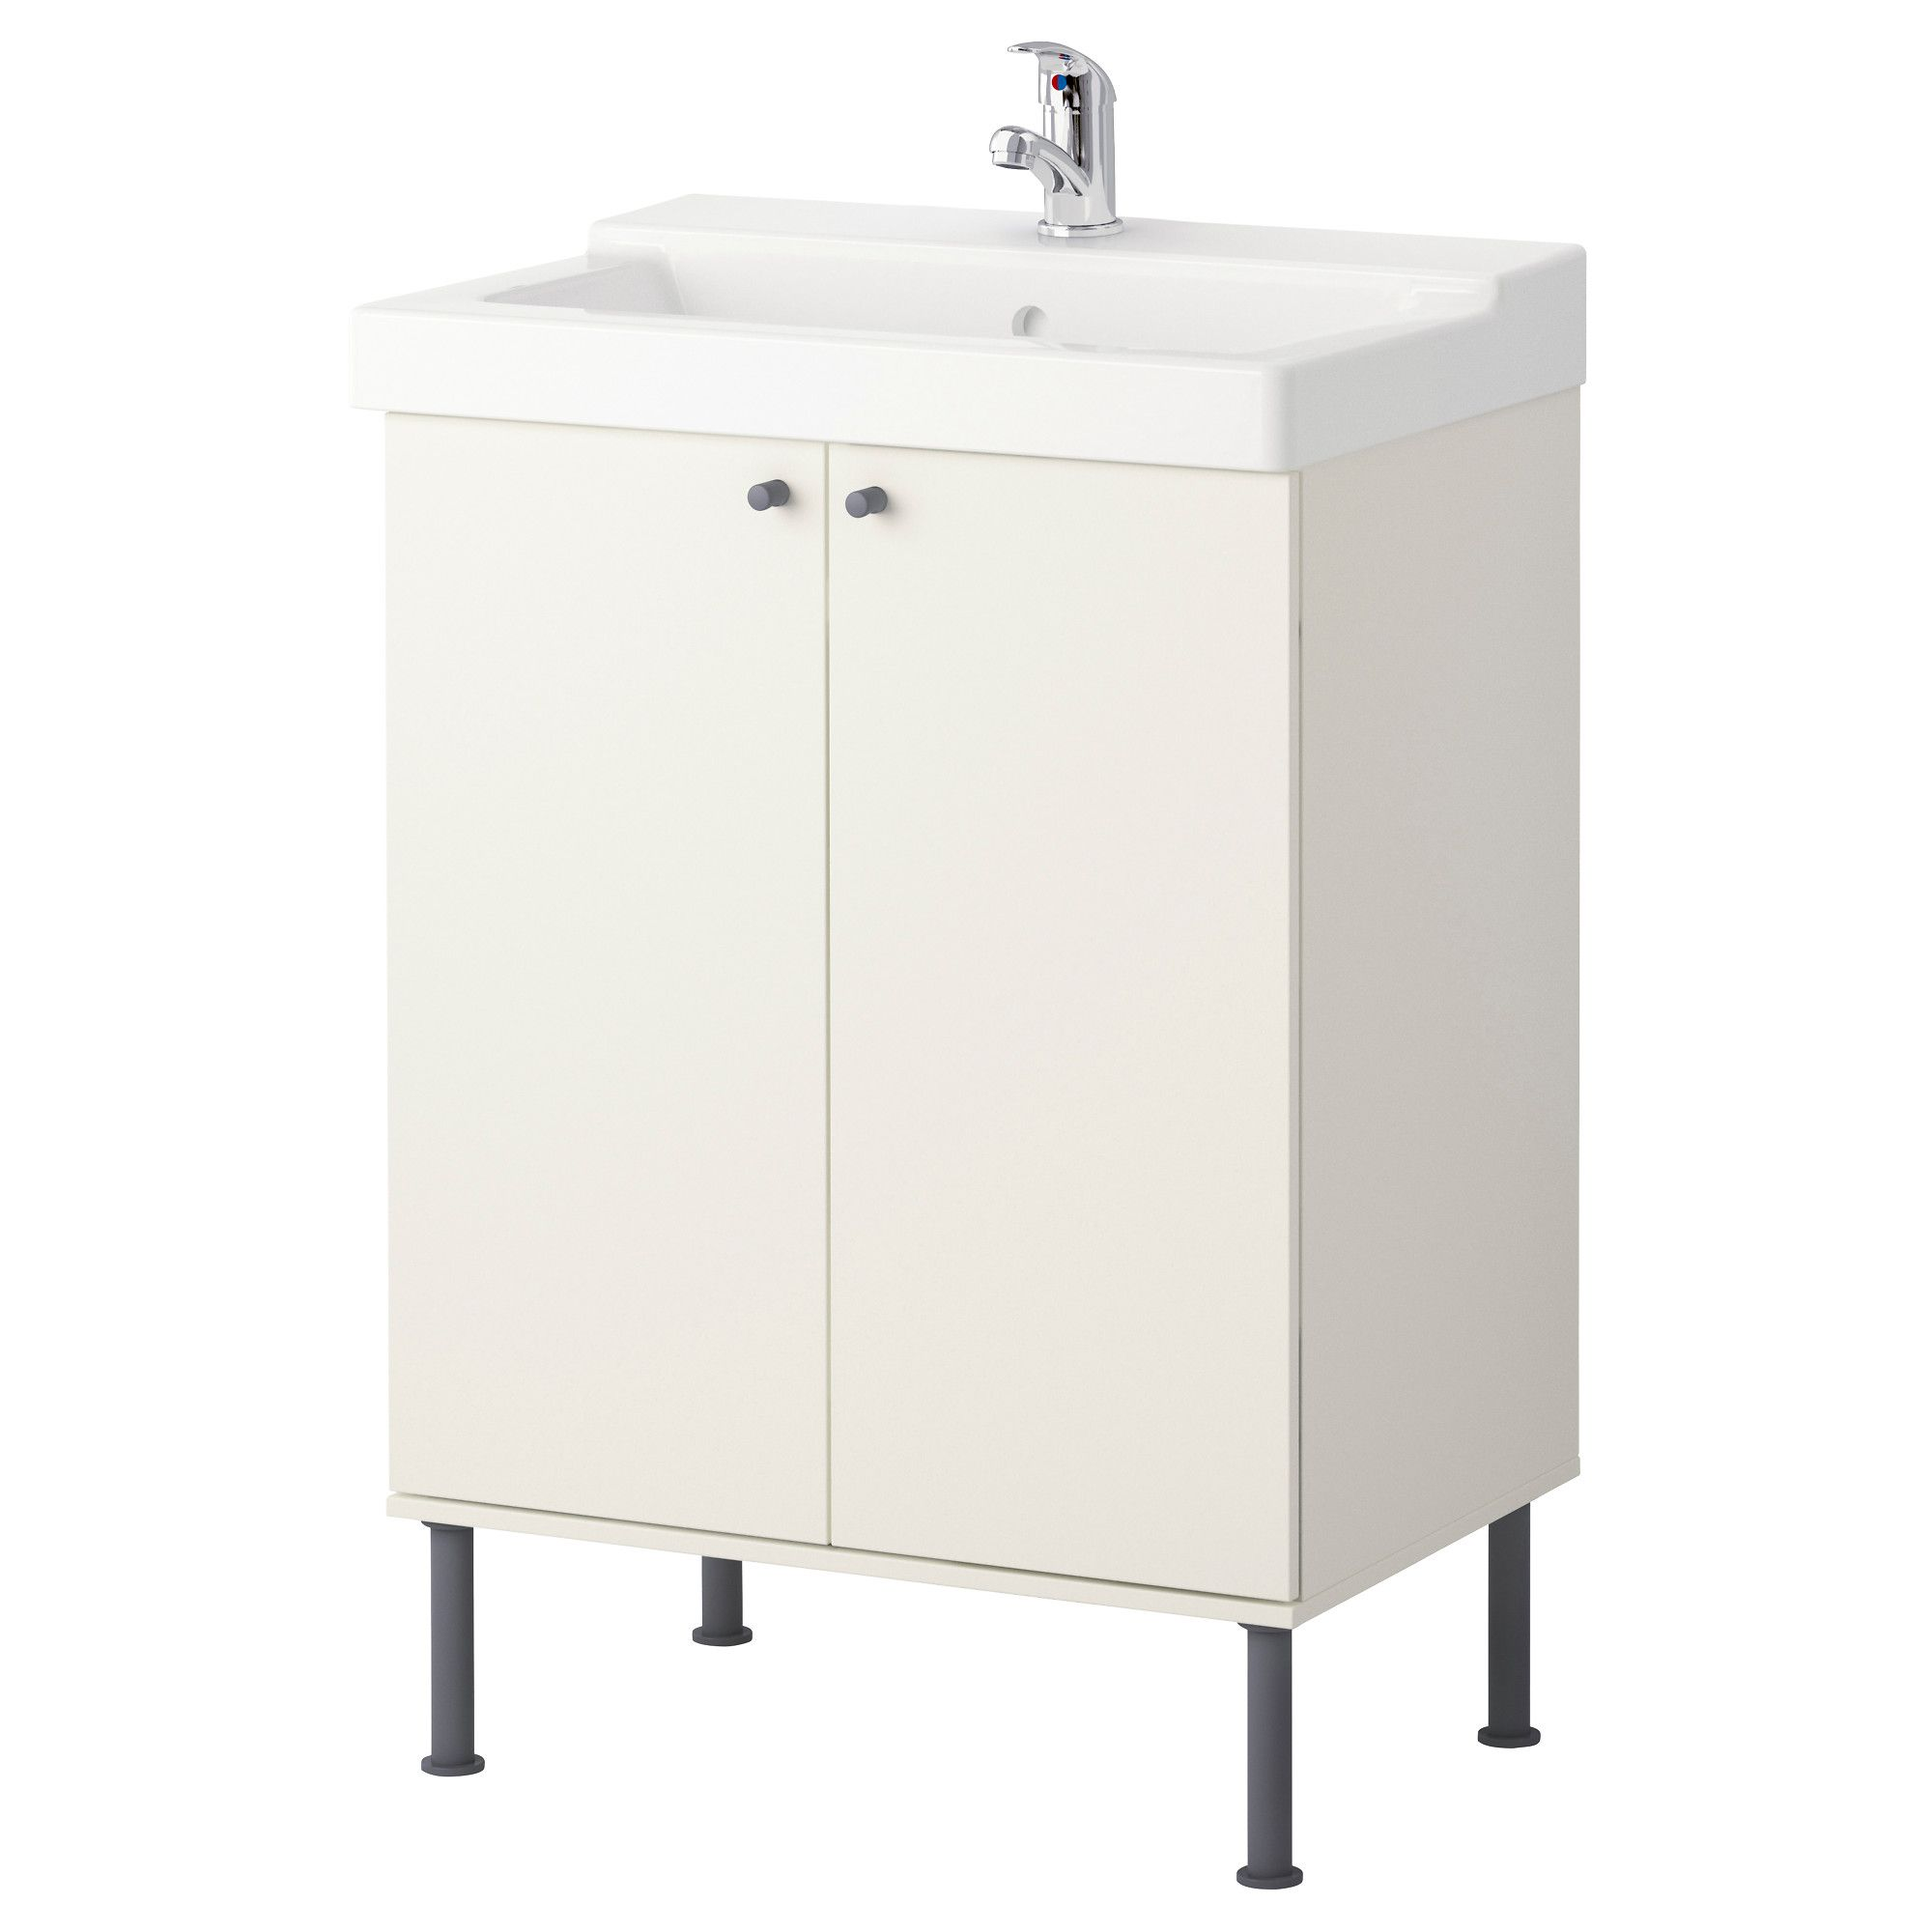 Ikea Us Furniture And Home Furnishings Sink Cabinet Bathroom Sink Cabinets Wash Basin Cabinet